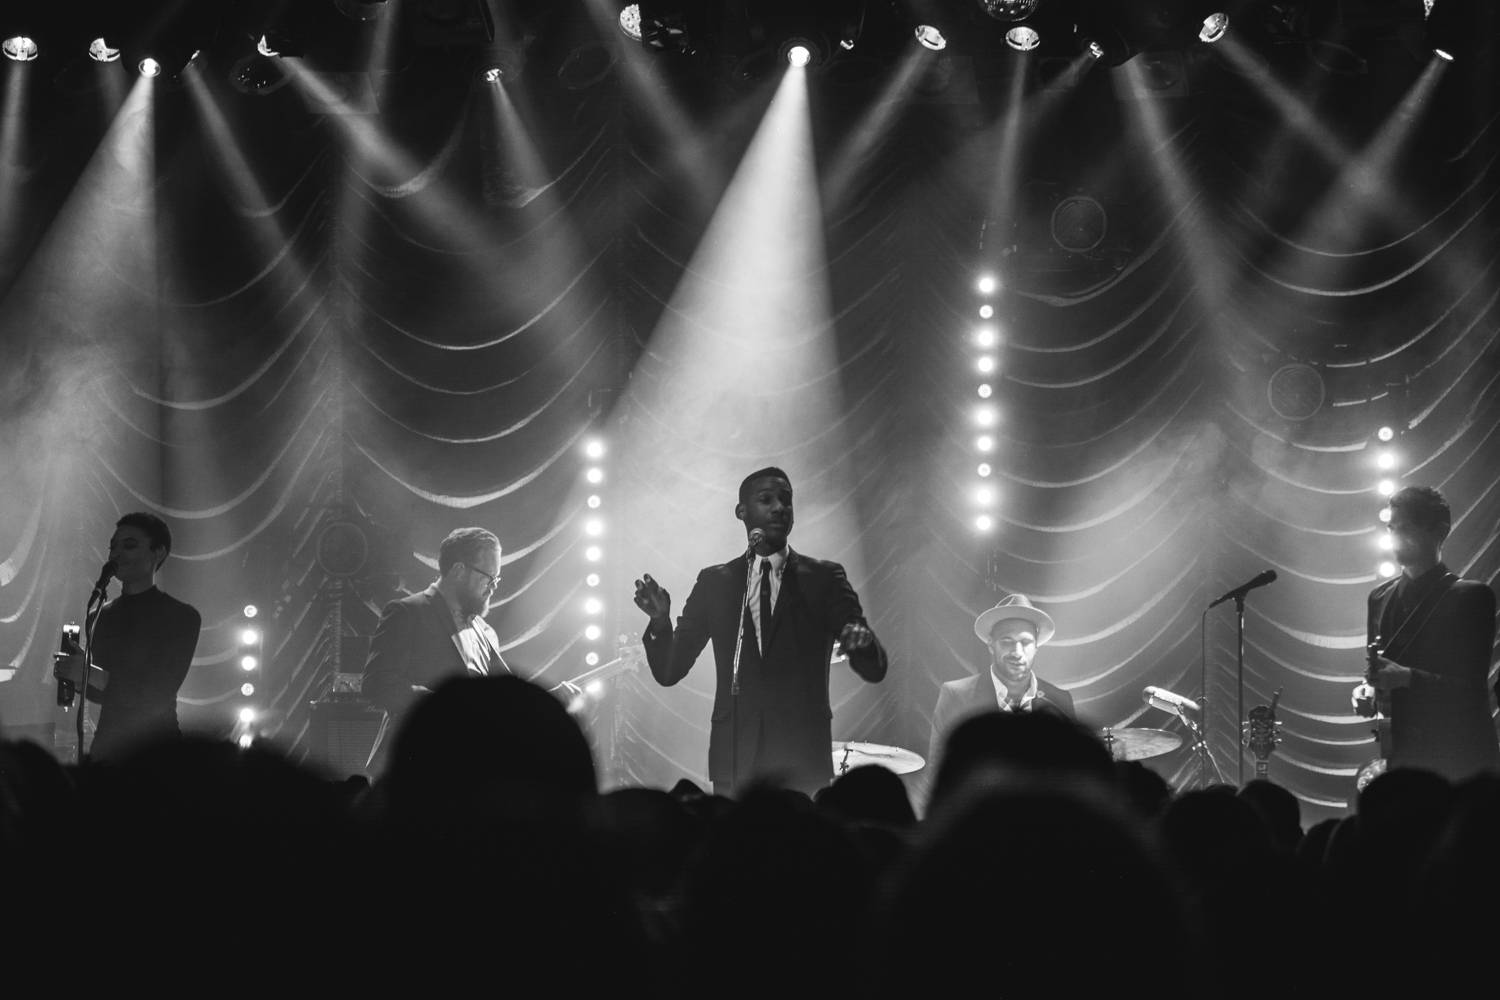 Leon Bridges at the Commodore Ballroom, Vancouver, Nov 3 2015. Pavel Boiko photo.